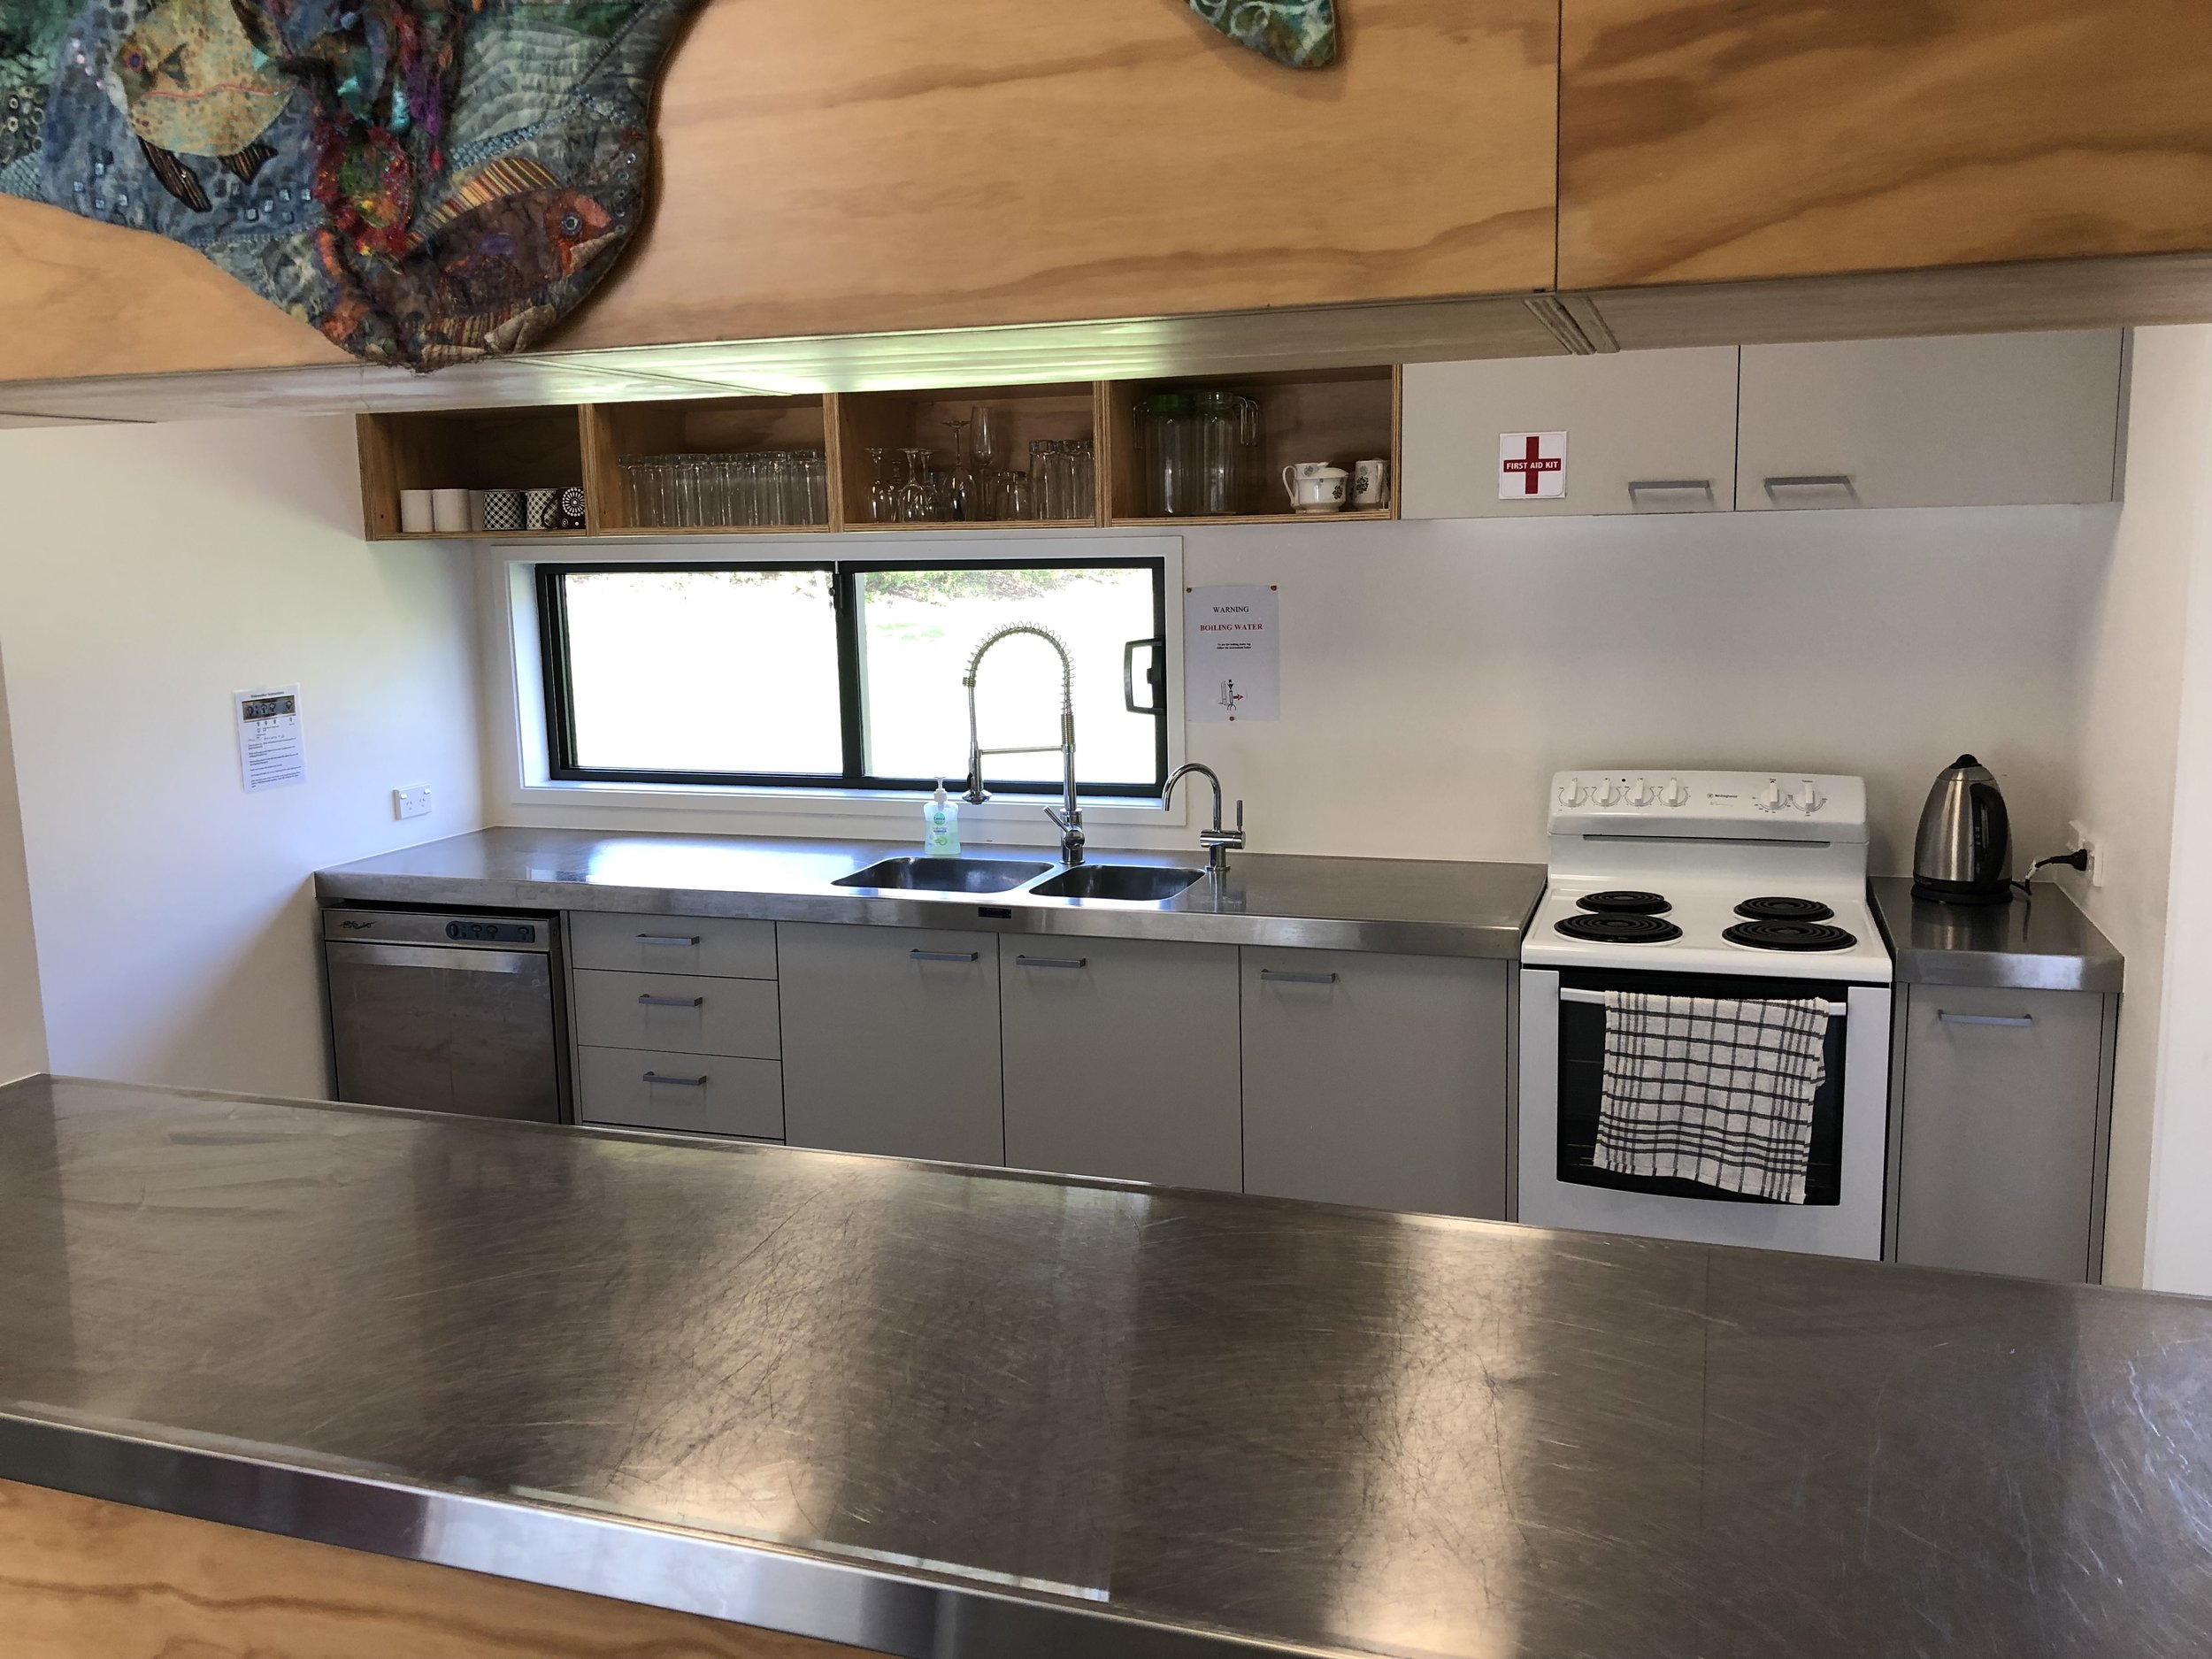 Kitchen with catering equipment available. Click to enlarge image.